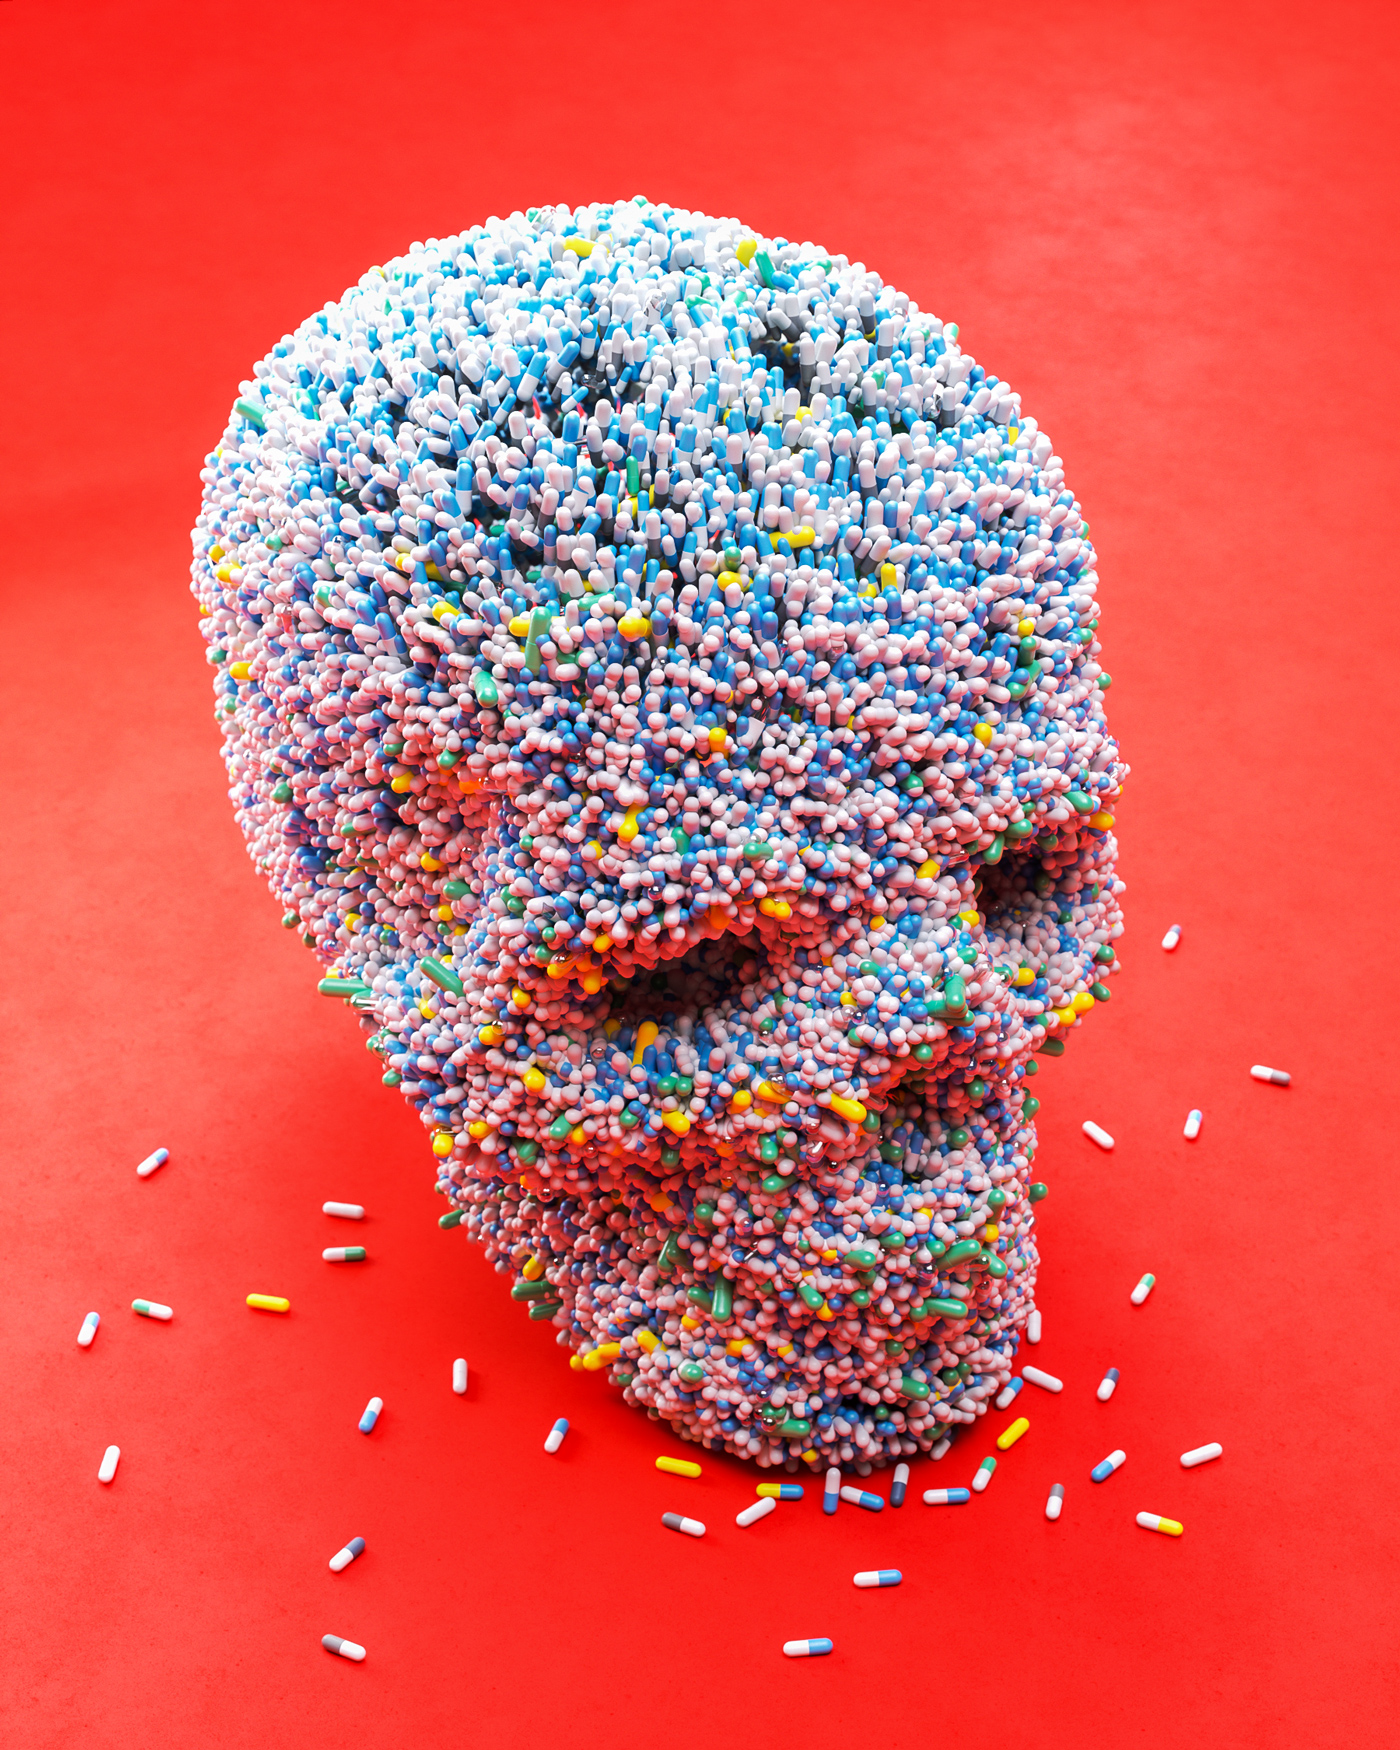 Newsweek_TheDeathOfAntibiotics-Cover_Angles-2.jpg